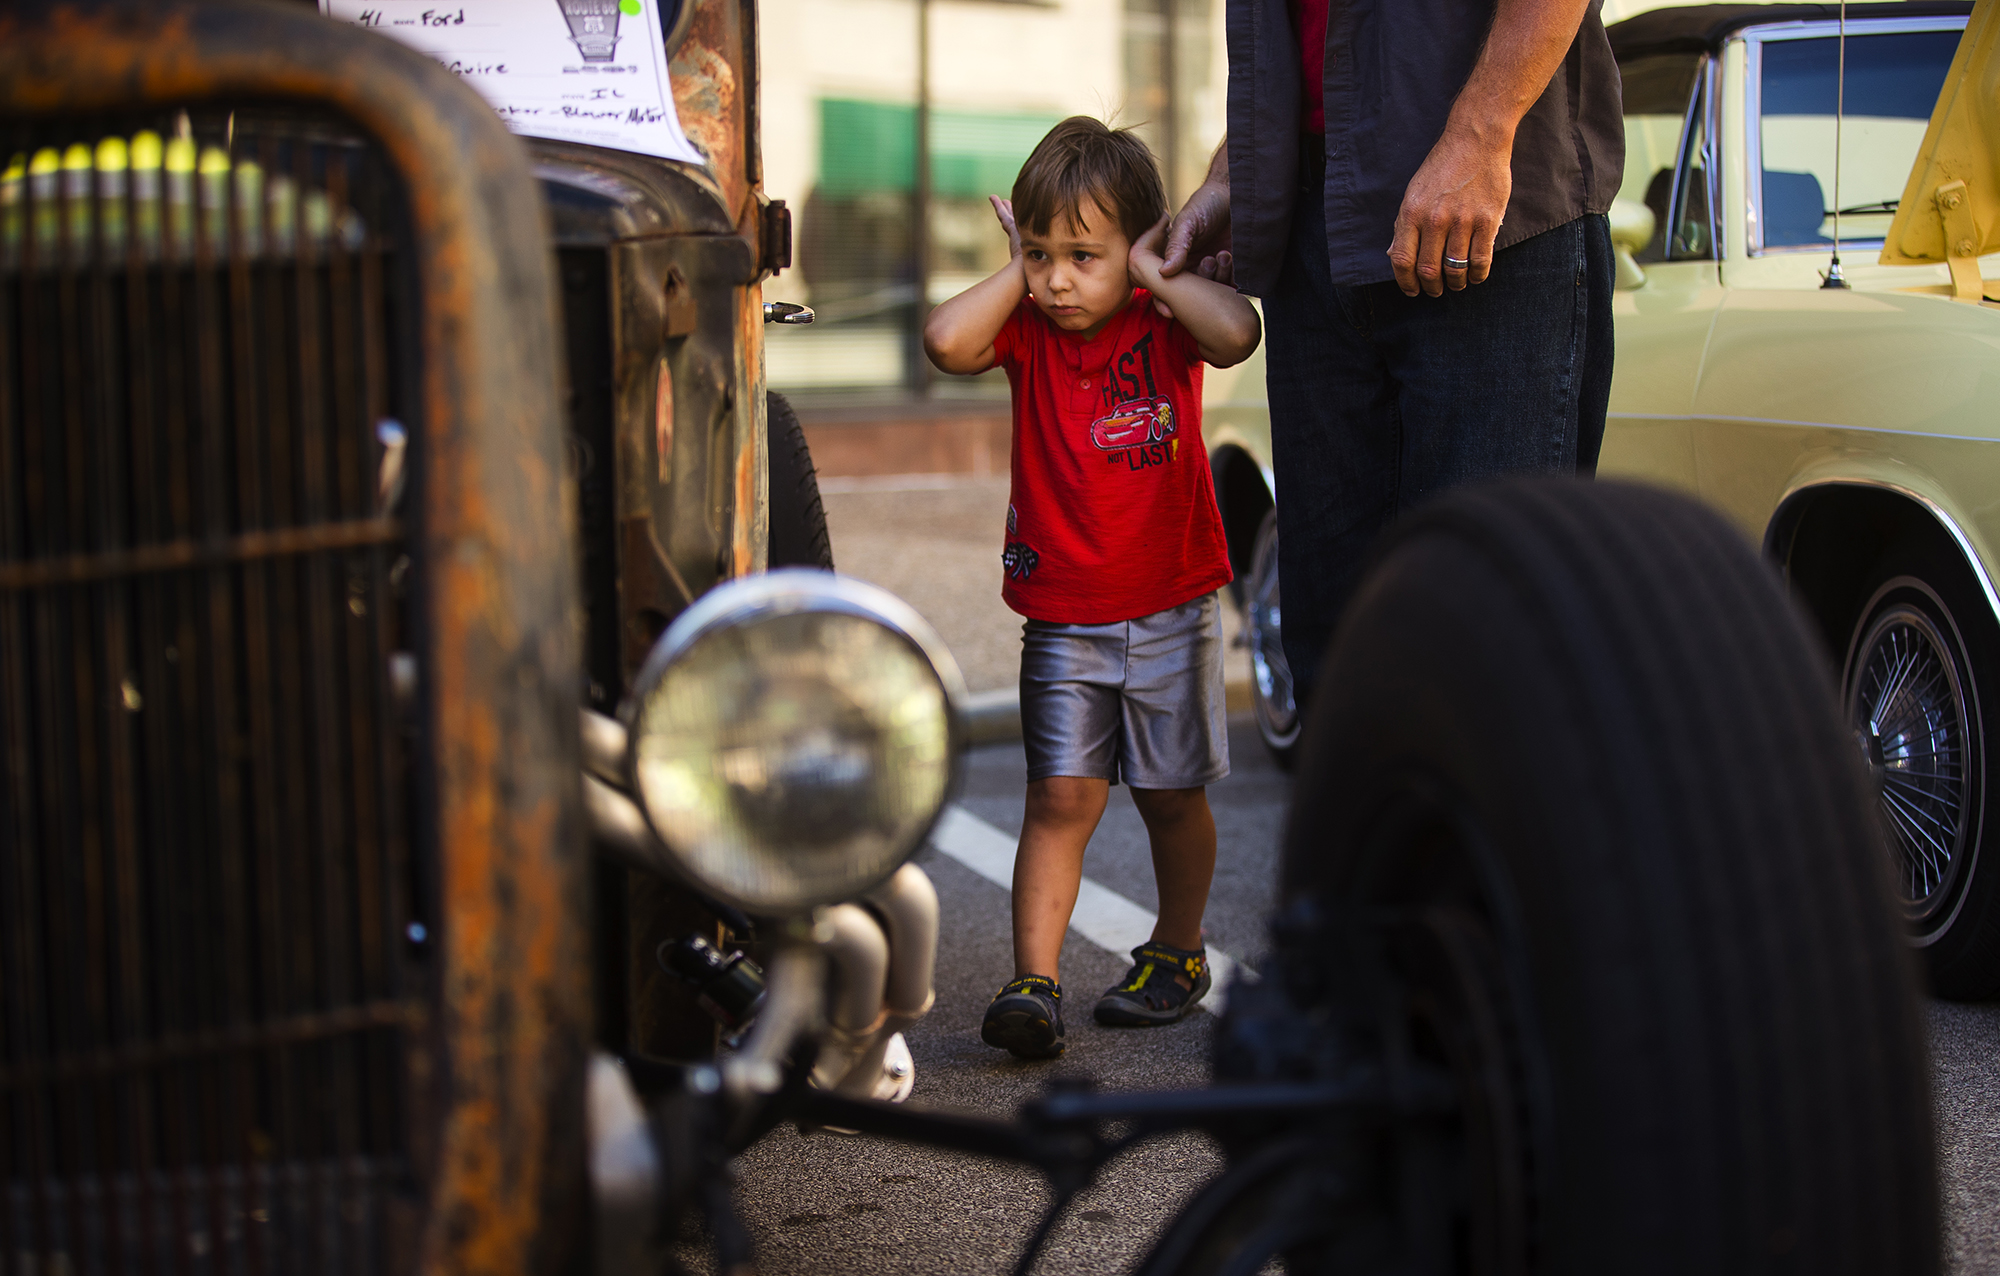 Carter Haseley covers his ears as a loud engine revs nearby while he takes in the 17th Annual International Route 66 Mother Road Festival with his dad John Sunday, Sept. 23, 2018. [Ted Schurter/The State Journal-Register]